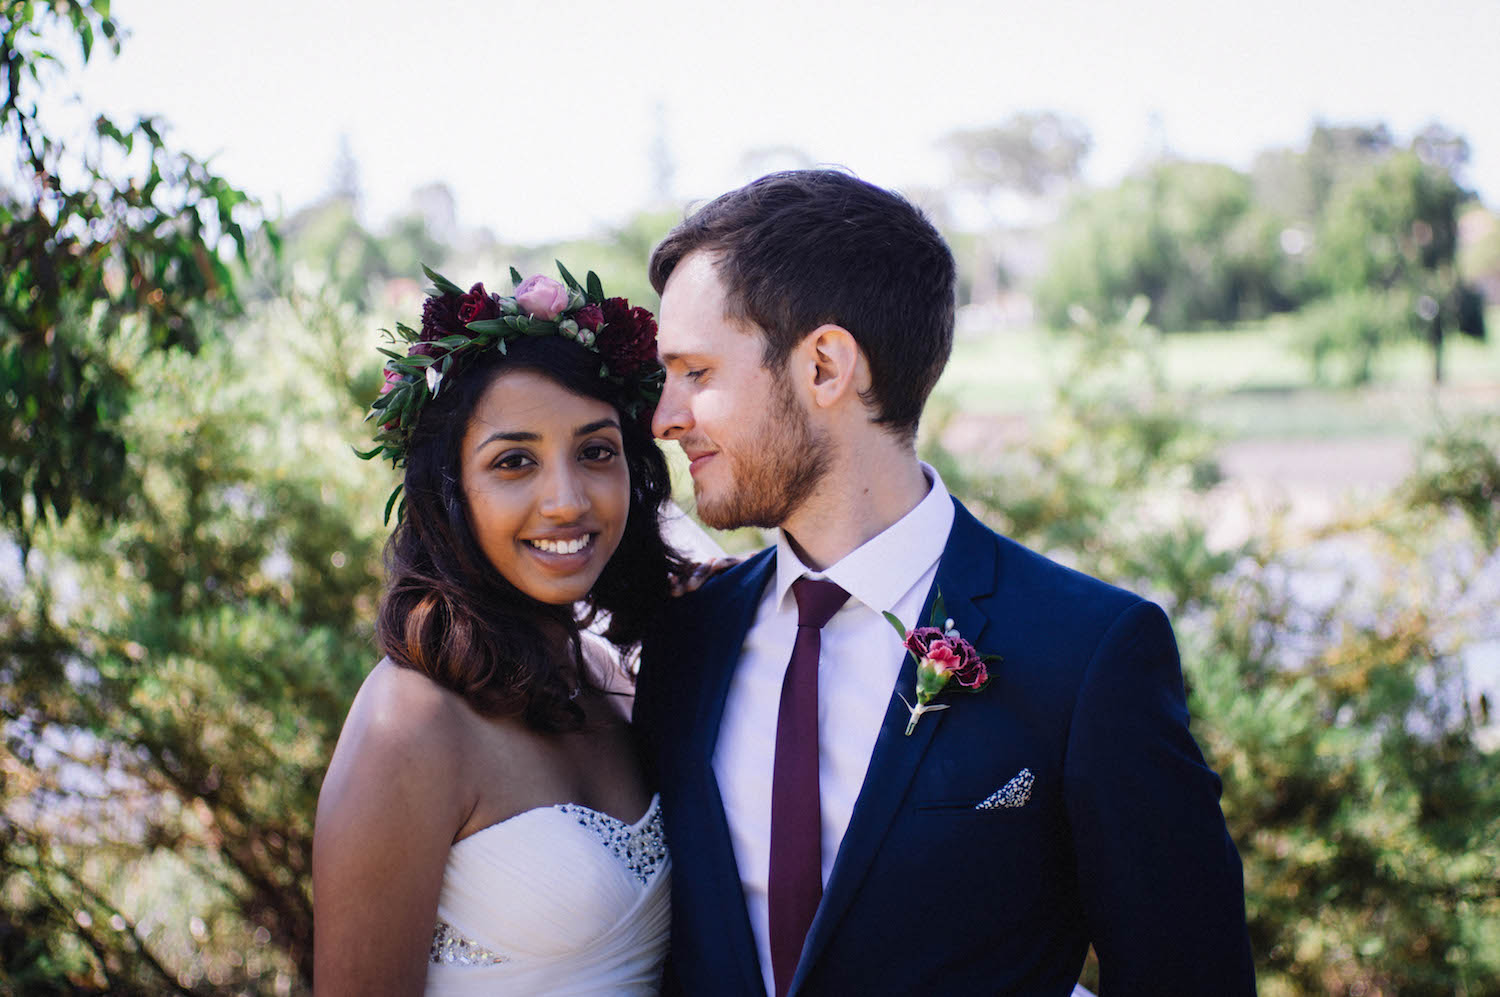 Bridal portraits of Jibb & Tripthi taken at Shenton Park by Rhianna May Destination Wedding Photographer